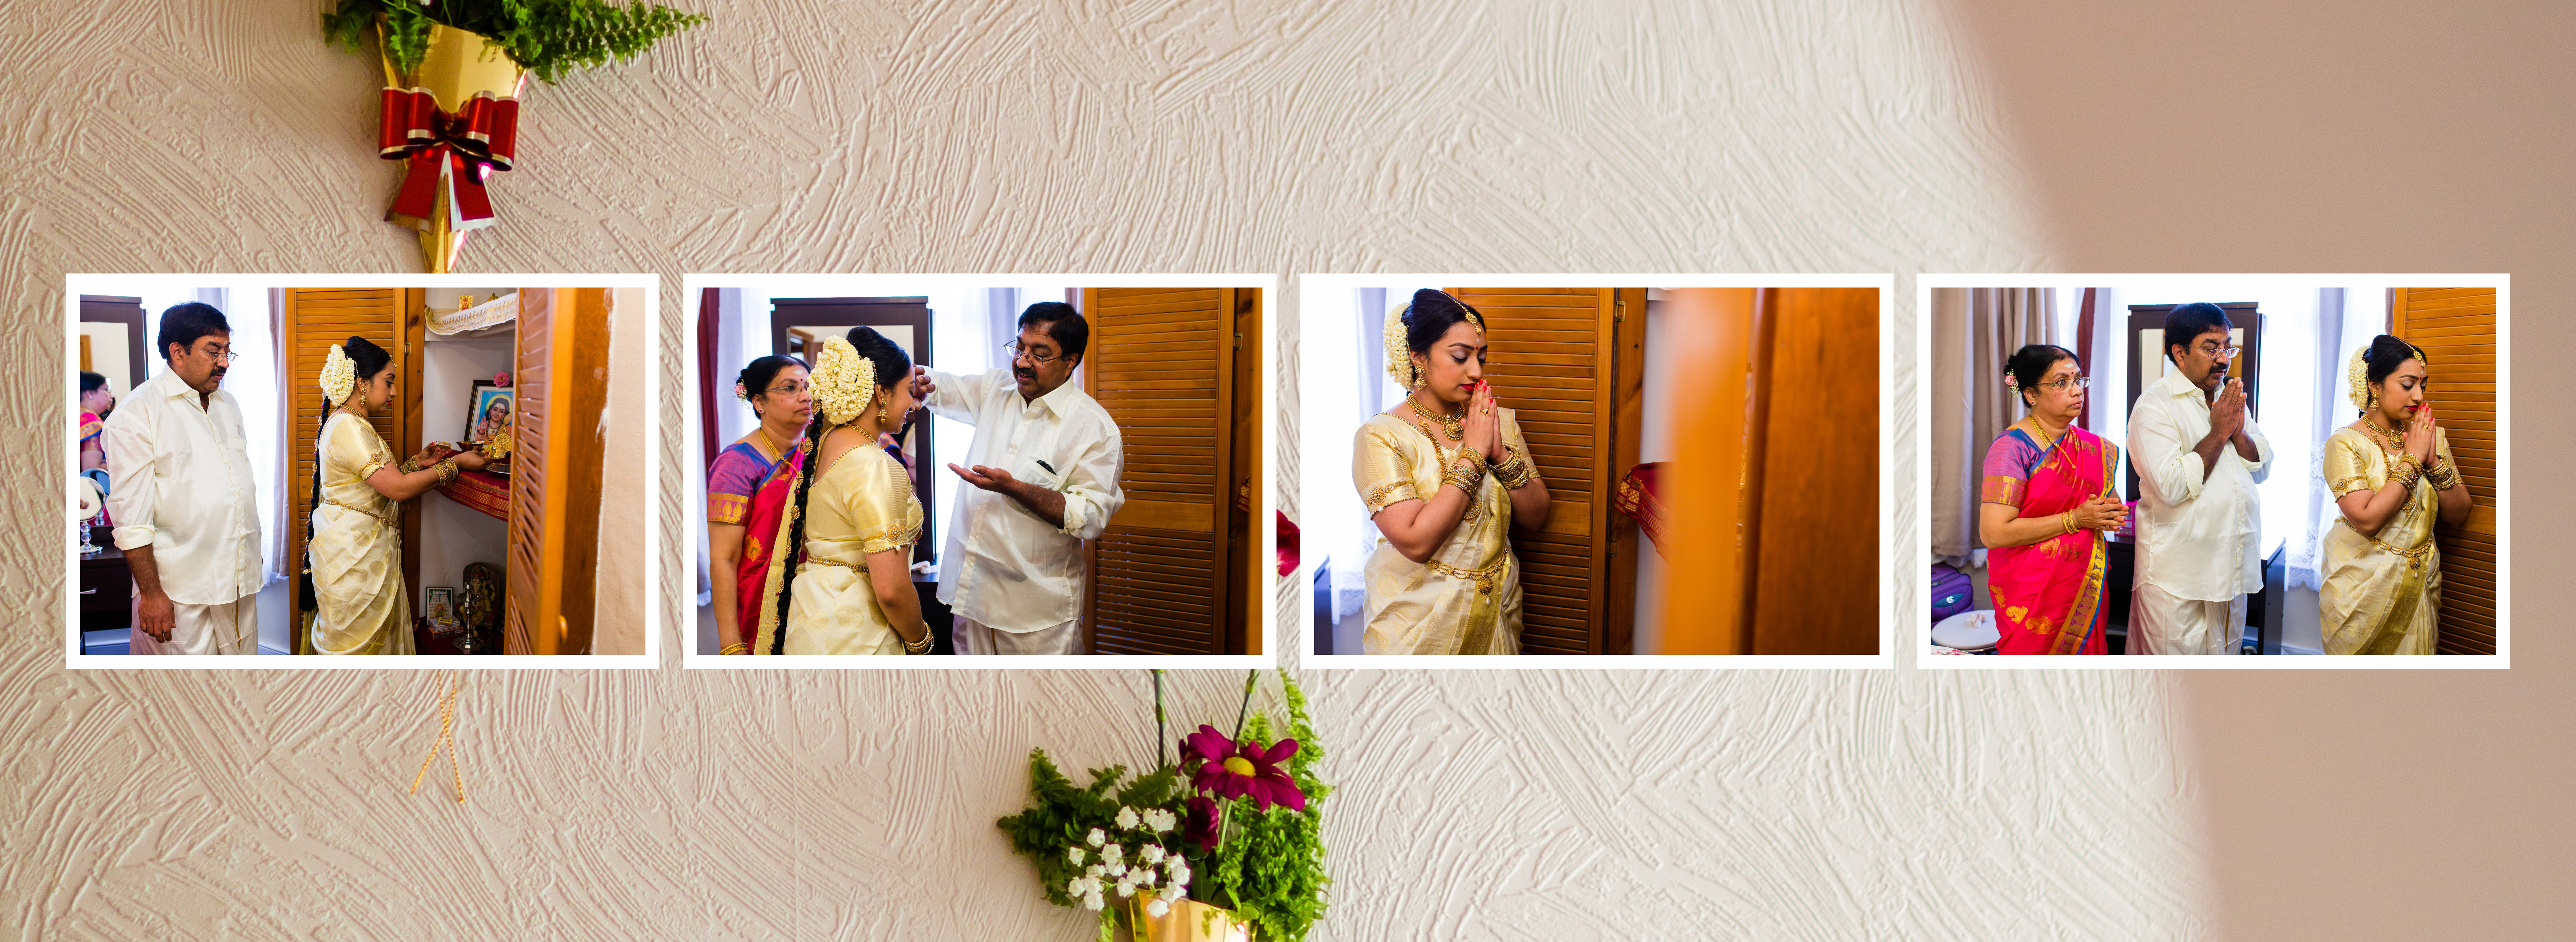 Fine Art Wedding Album Wedding Photography By Mayuran Siva London